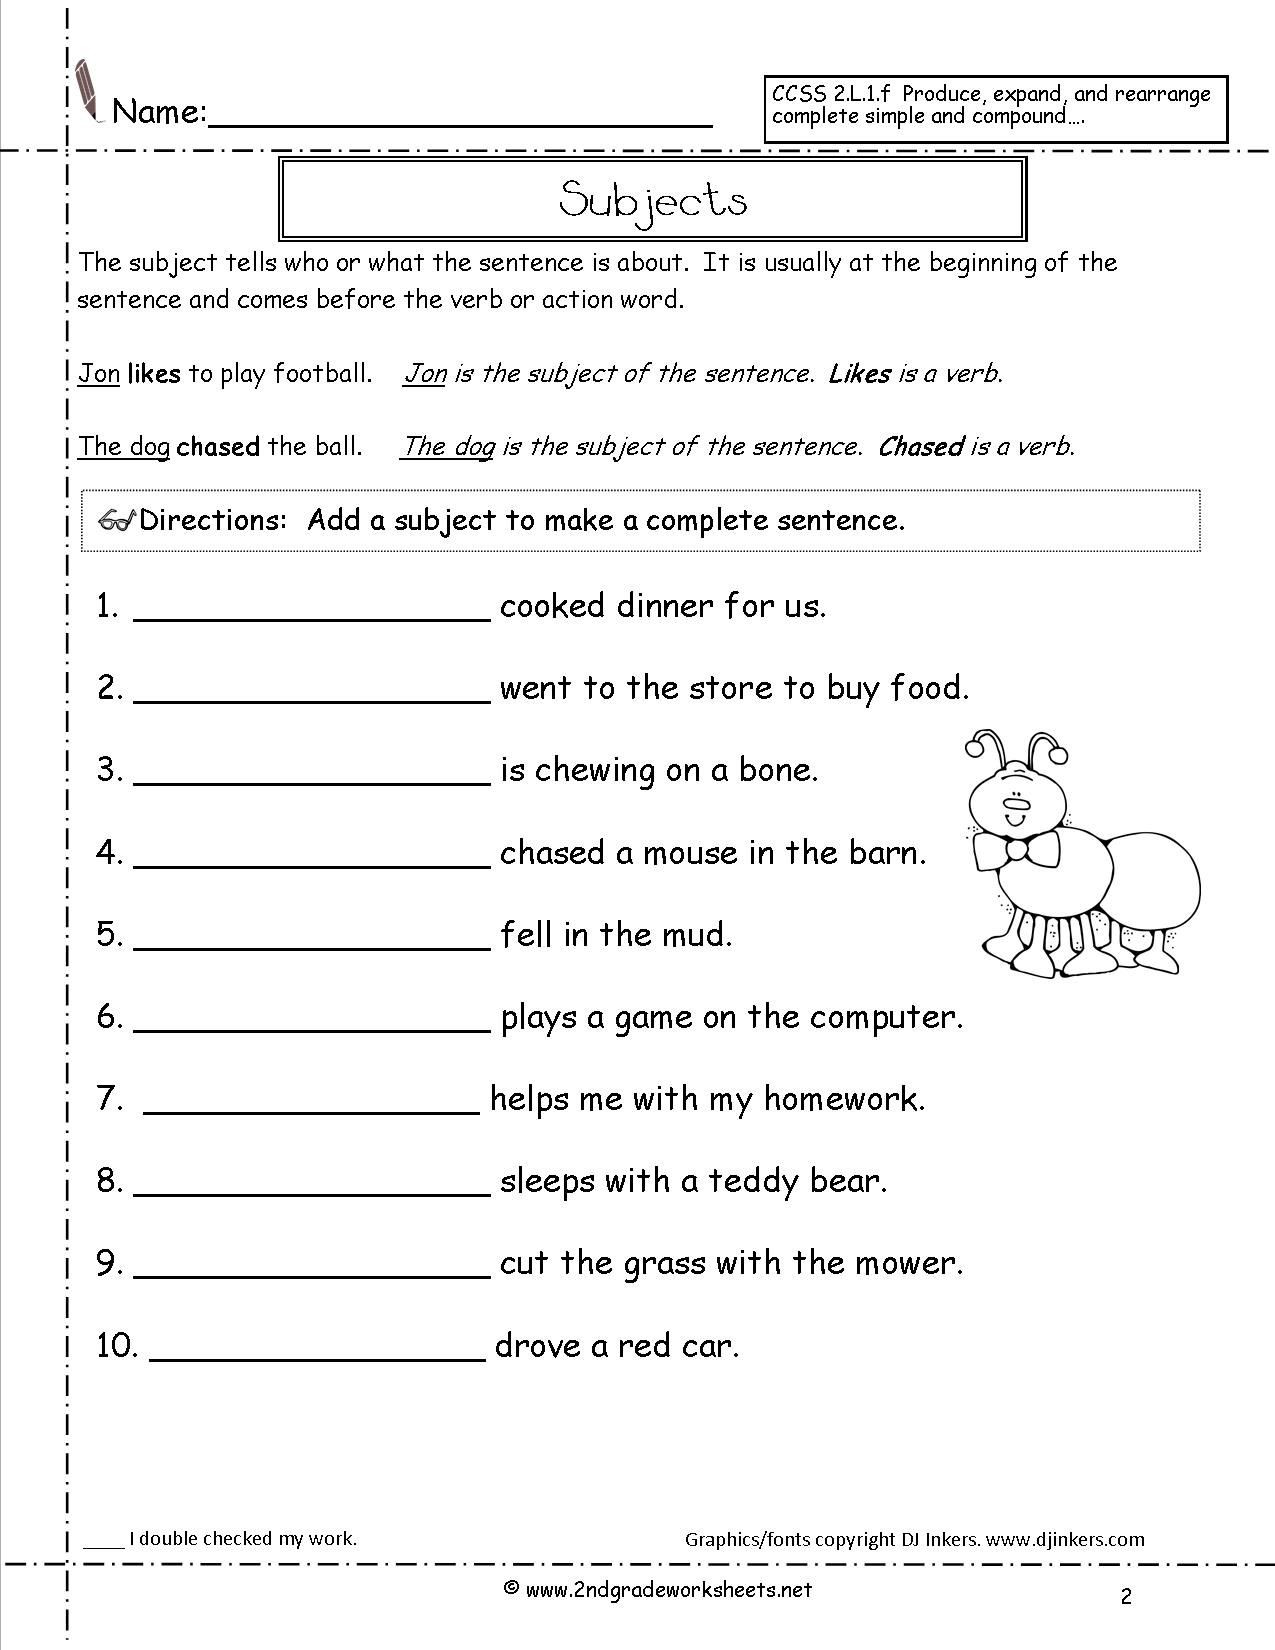 Topic Sentences Worksheets Grade 4 Subjectworksheet2 1275—1650